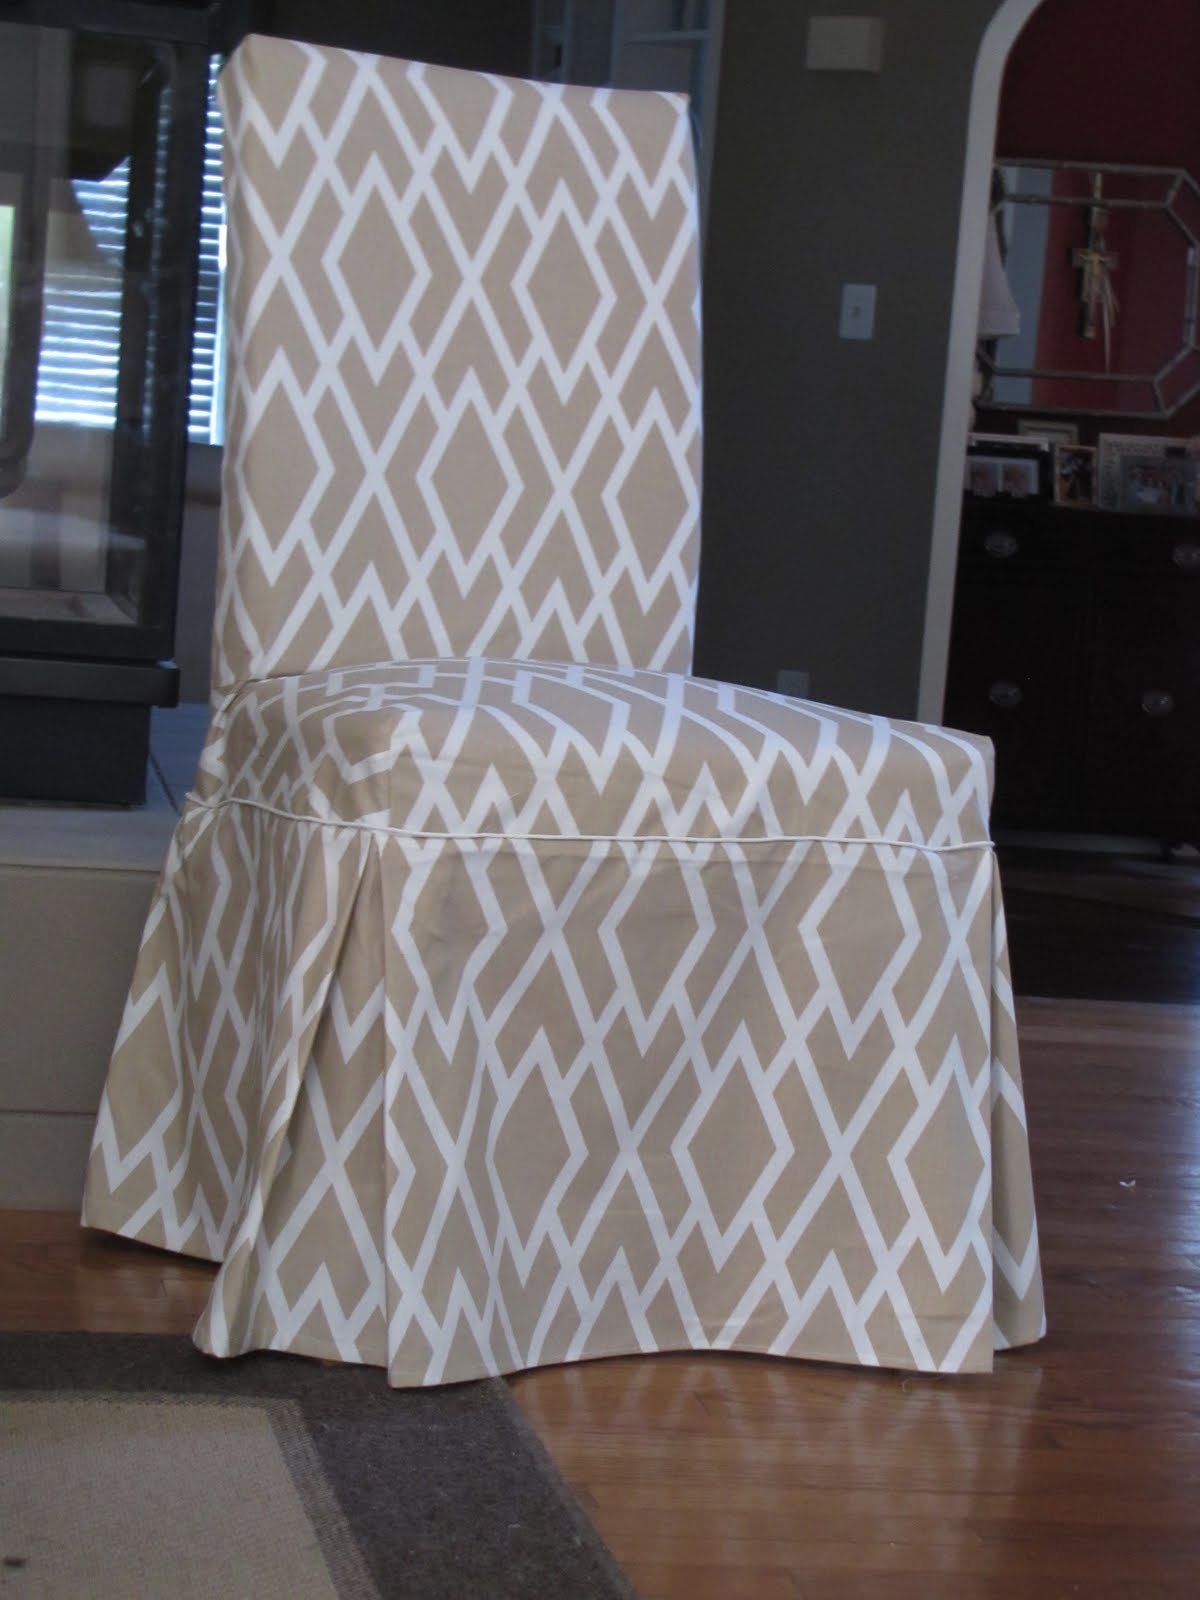 Bibbidi bobbidi beautiful dining chair slipcovers for Dining room chair covers